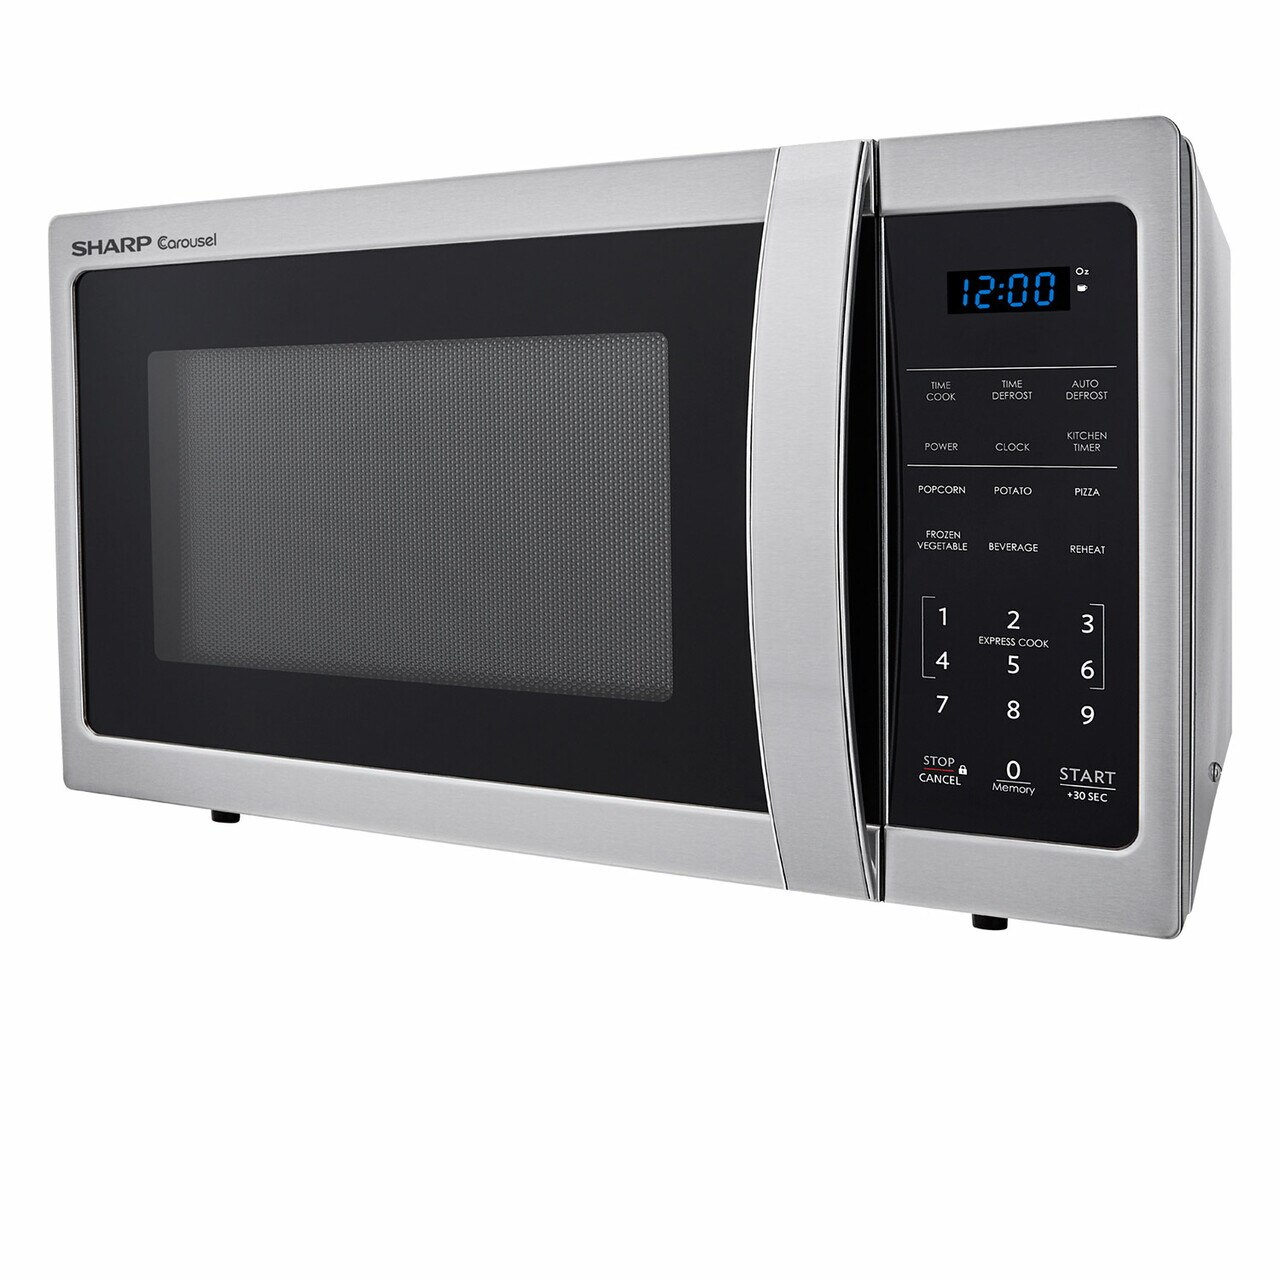 0.9 cu. ft. 900W Sharp Stainless Steel Carousel Countertop Microwave (SMC0912BS) – left side view